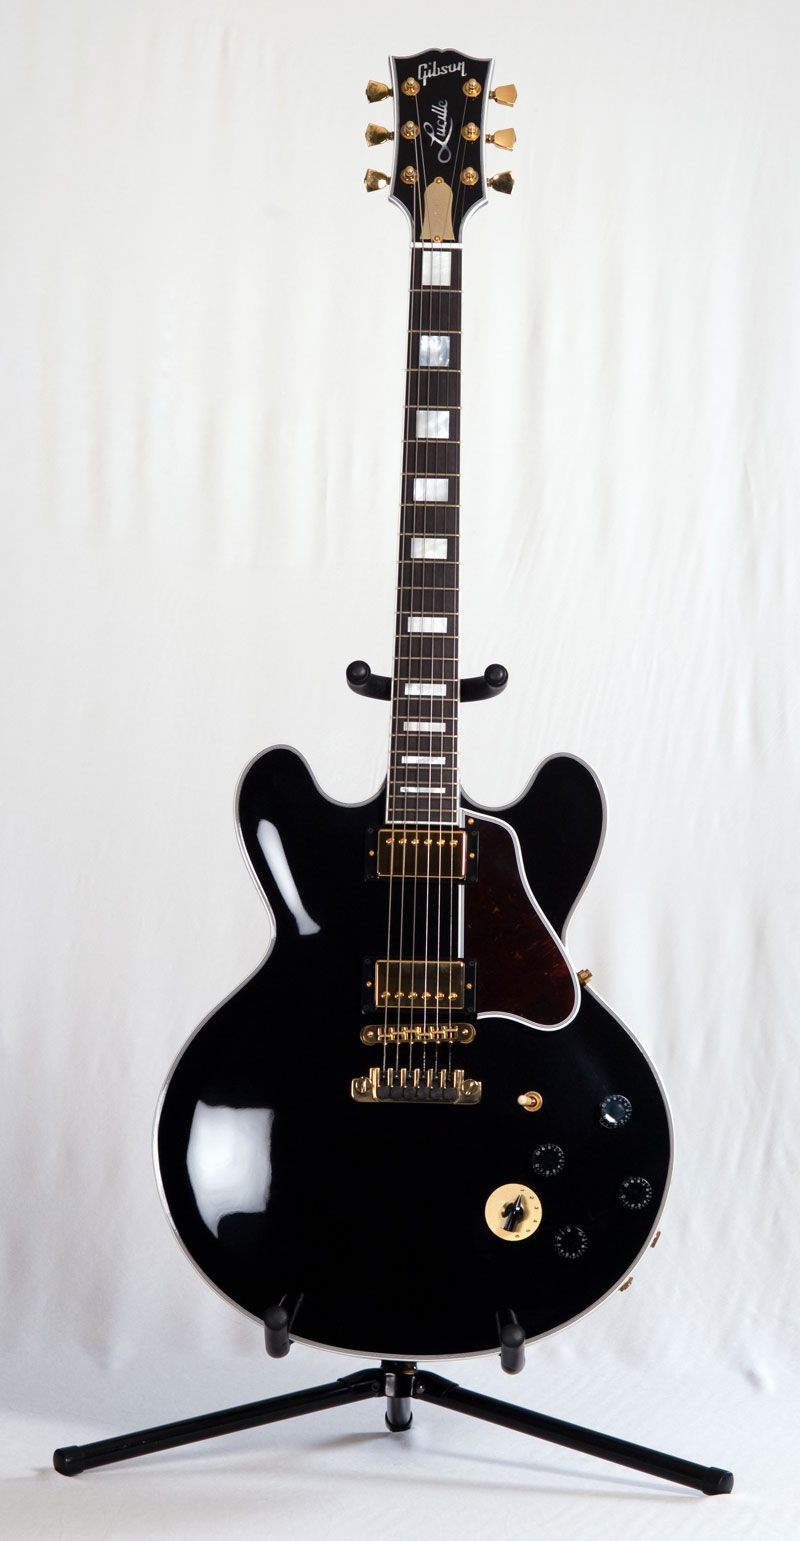 b b king s modified gibson es 355 semi hollow d lucille b b king s modified gibson semi hollow d lucille modifications include maple neck and no f holes removed to reduce feedback bb king guitars